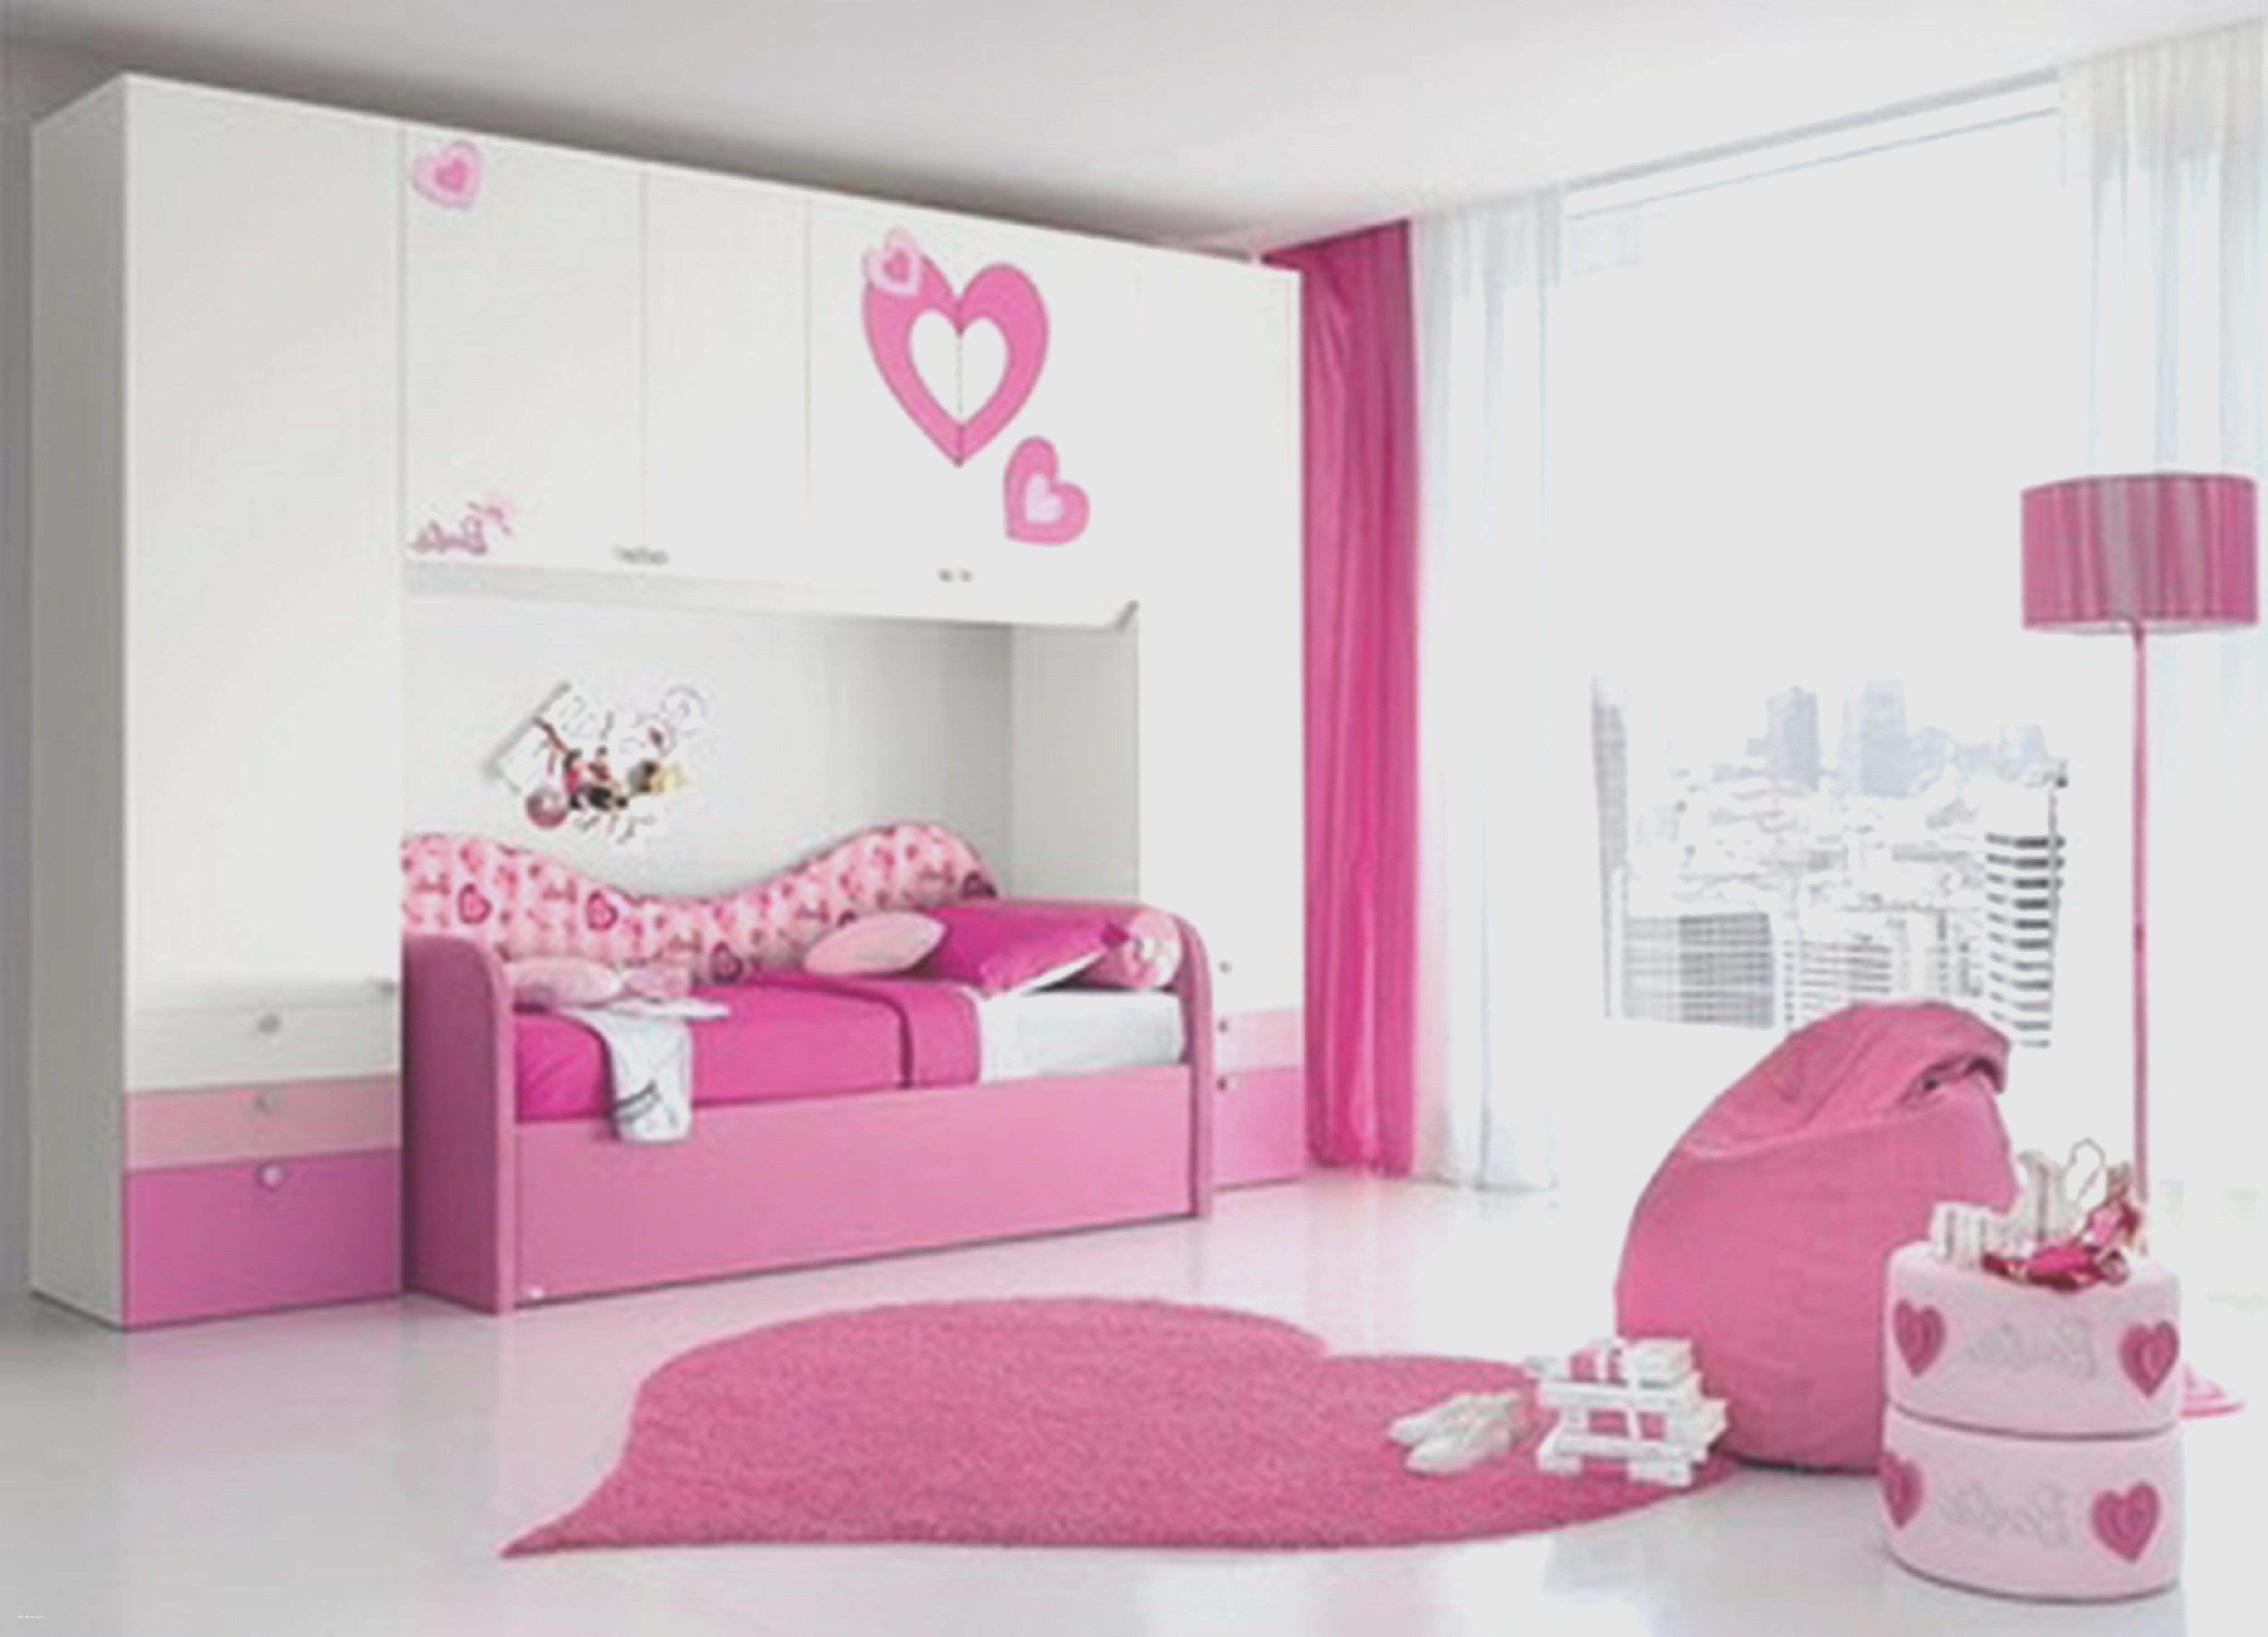 20 Beautiful Girls Bedroom Ideas for Your Child and Teenager